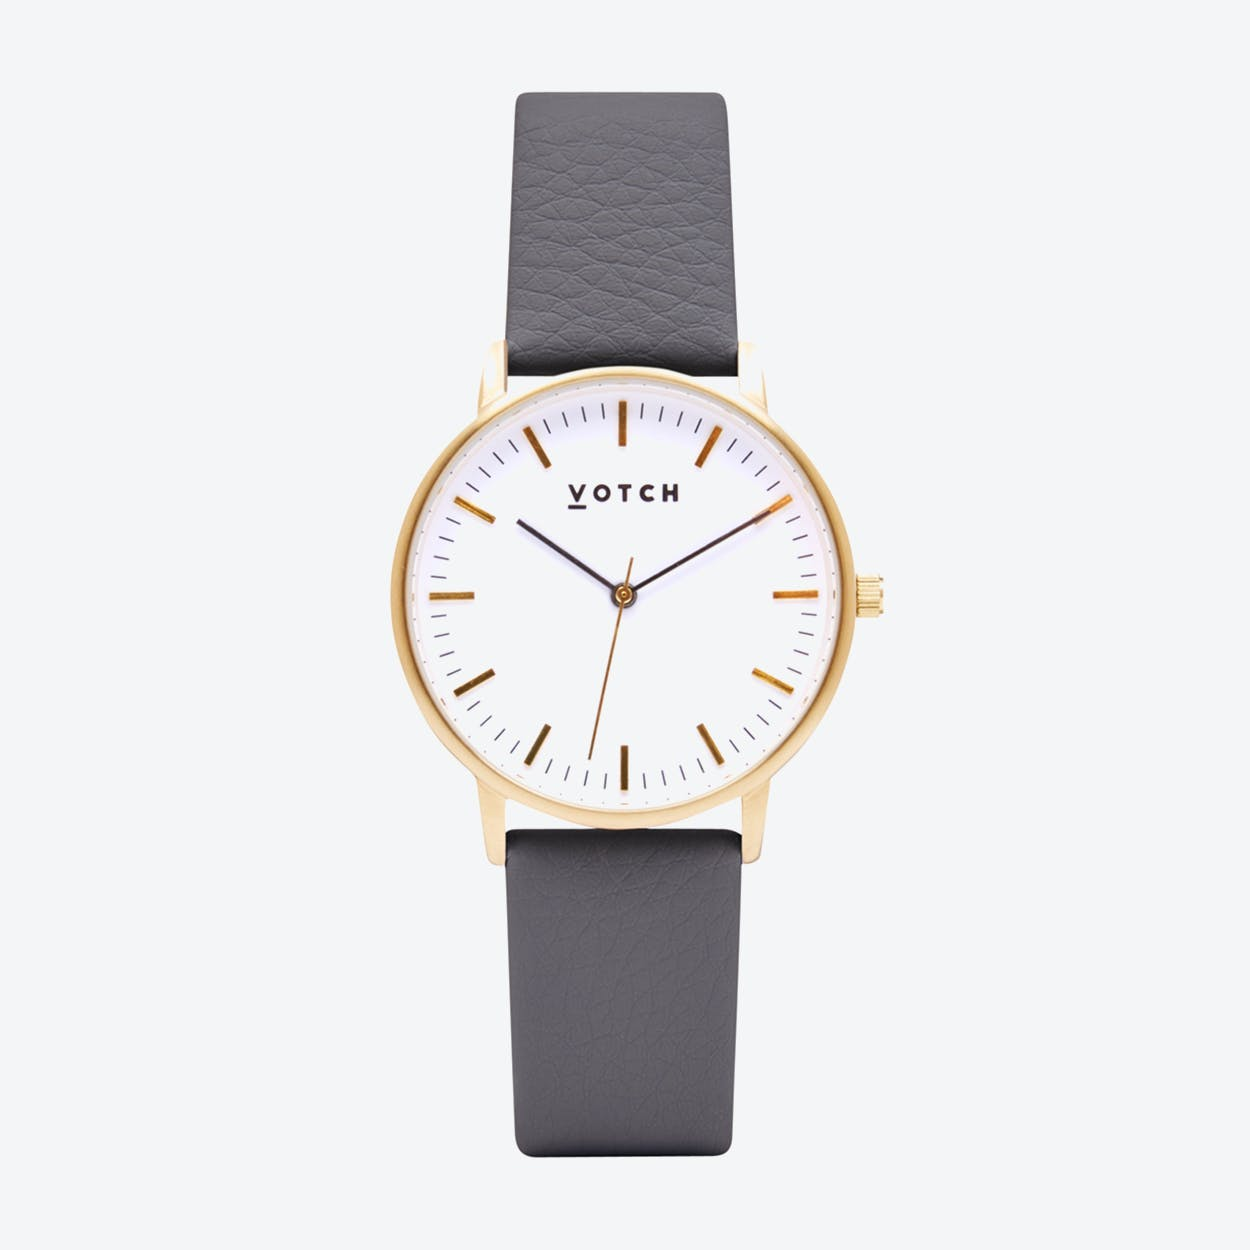 Intense Classic Watch in Gold with White Face and Grey Vegan Leather Strap, 36mm